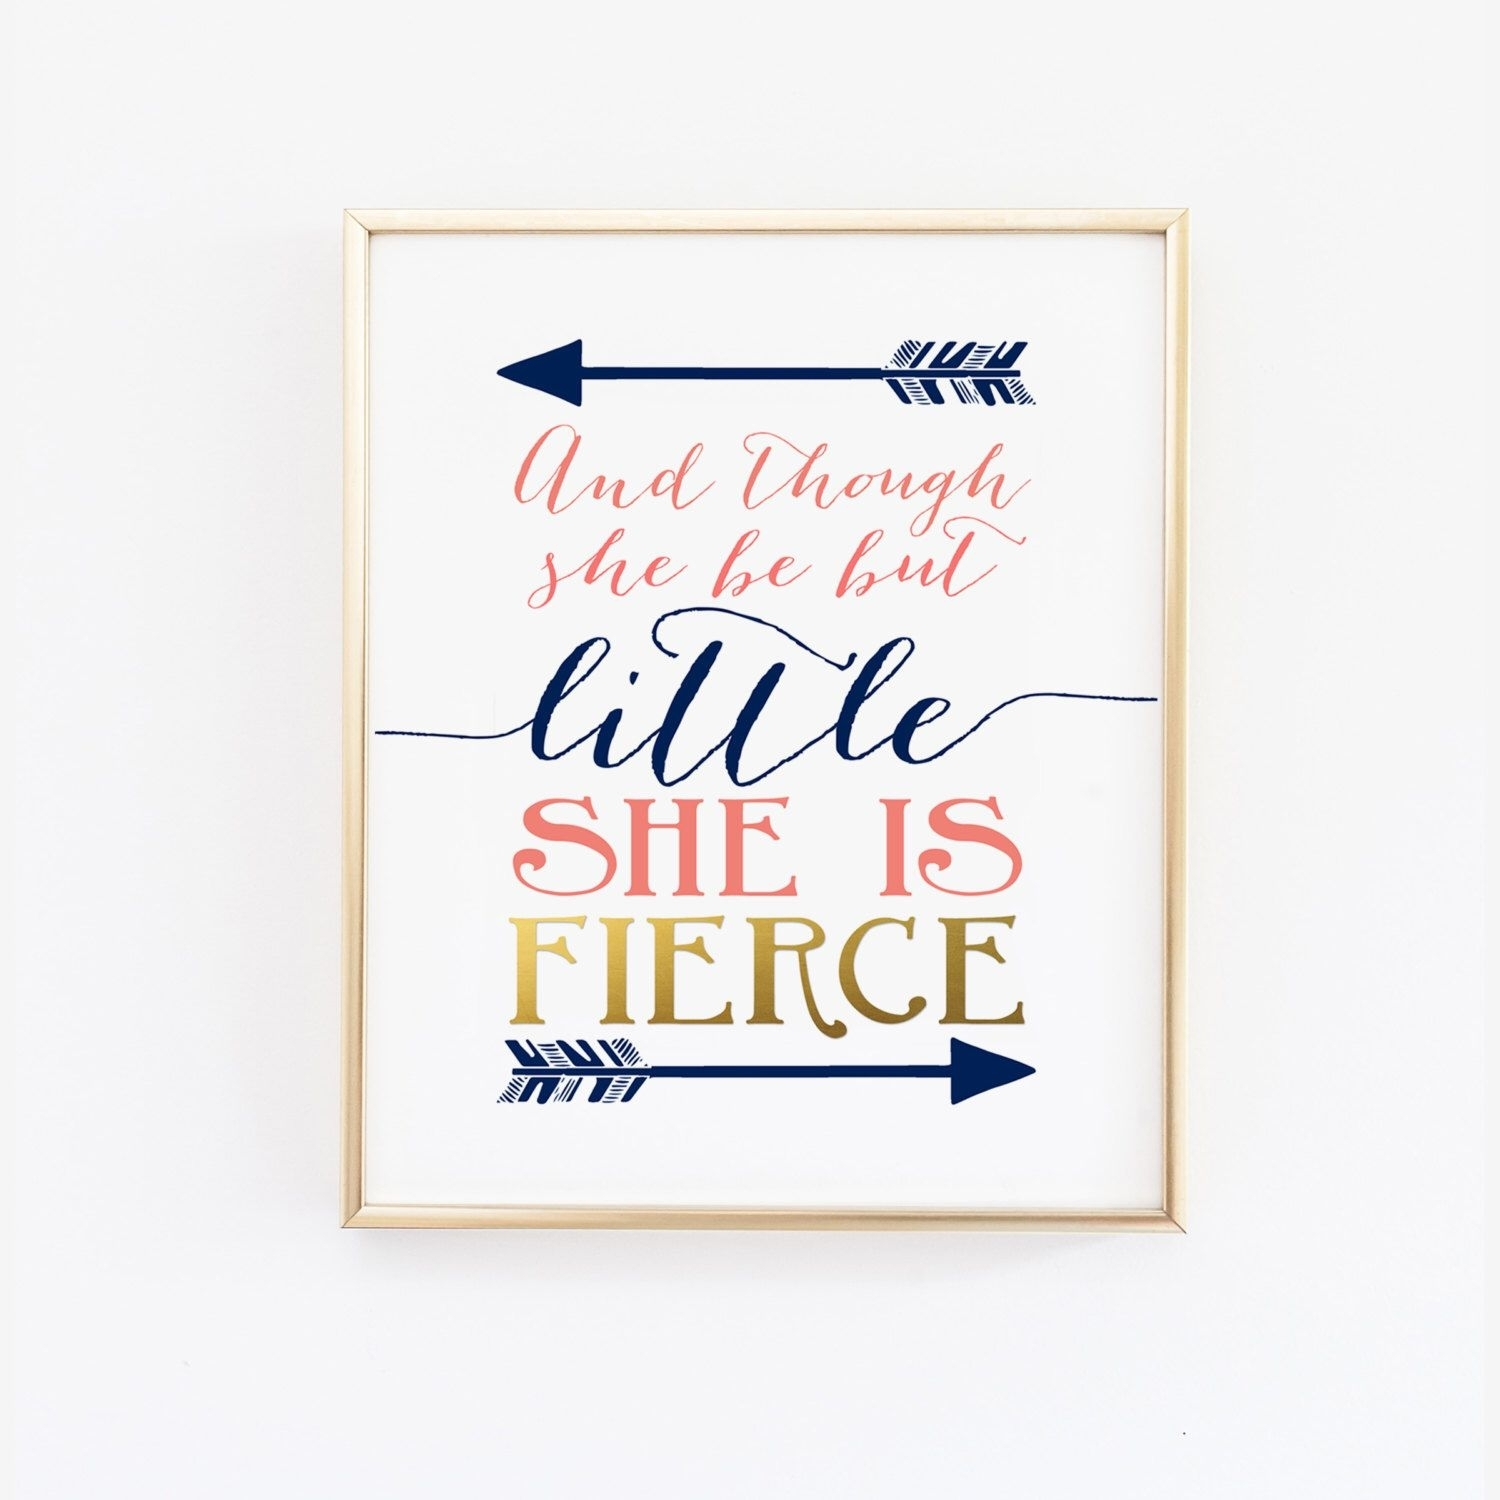 Printable Wall Art – And Though She Be But Little She Is Fierce Intended For Best And Newest Though She Be But Little She Is Fierce Wall Art (Gallery 3 of 20)